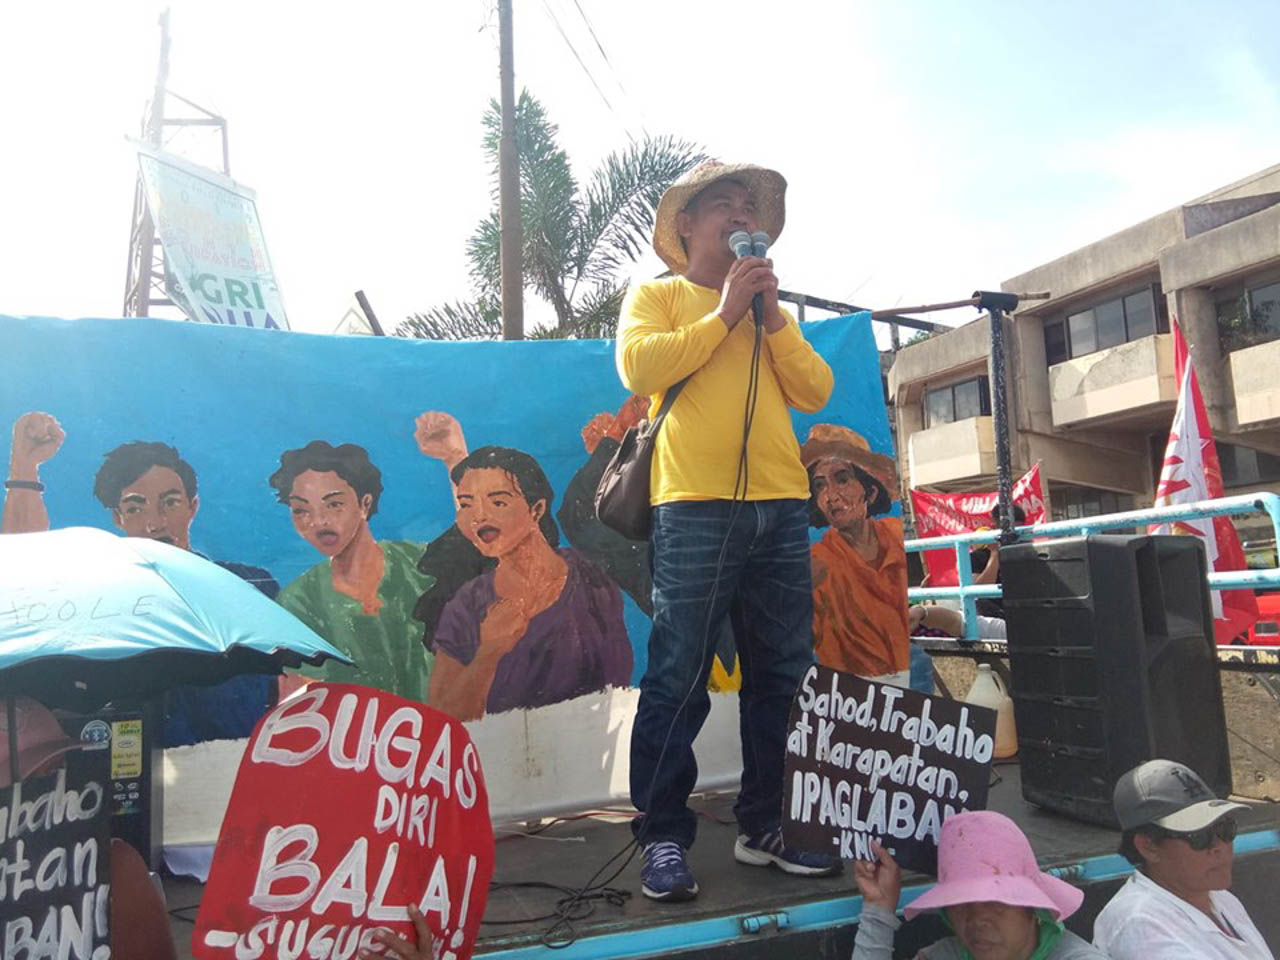 TACLOBAN CITY. Protesters hold a United People's SONA in Tacloban City on July 22. Photo courtesy of Bayan Eastern Visayas